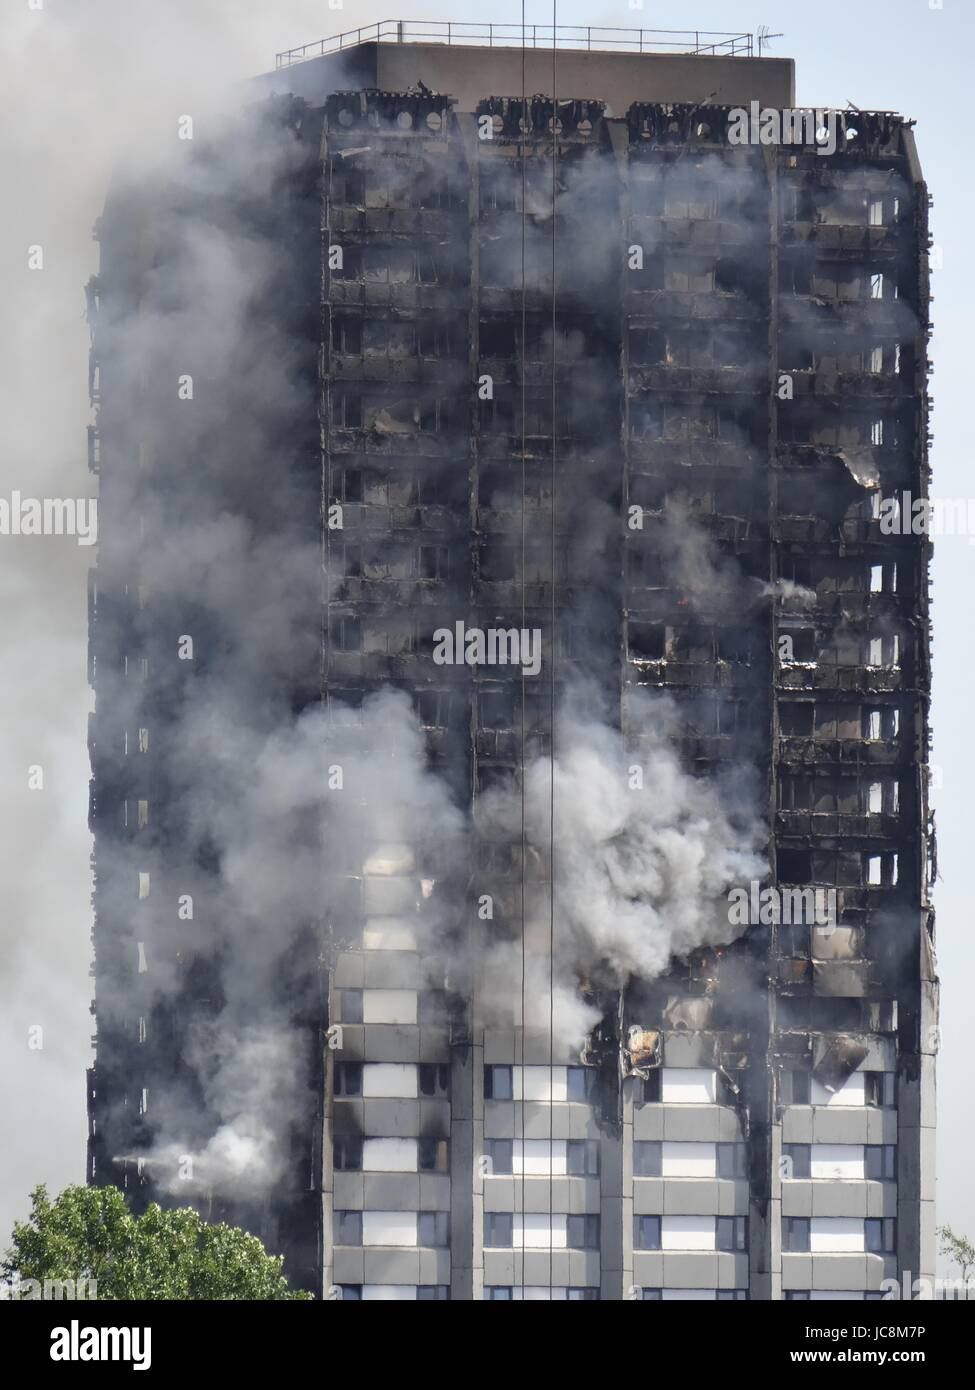 Firefighters are trying to stop he fire in West London where the Grenfell Tower was blazing over night, meanwhile - Stock Image